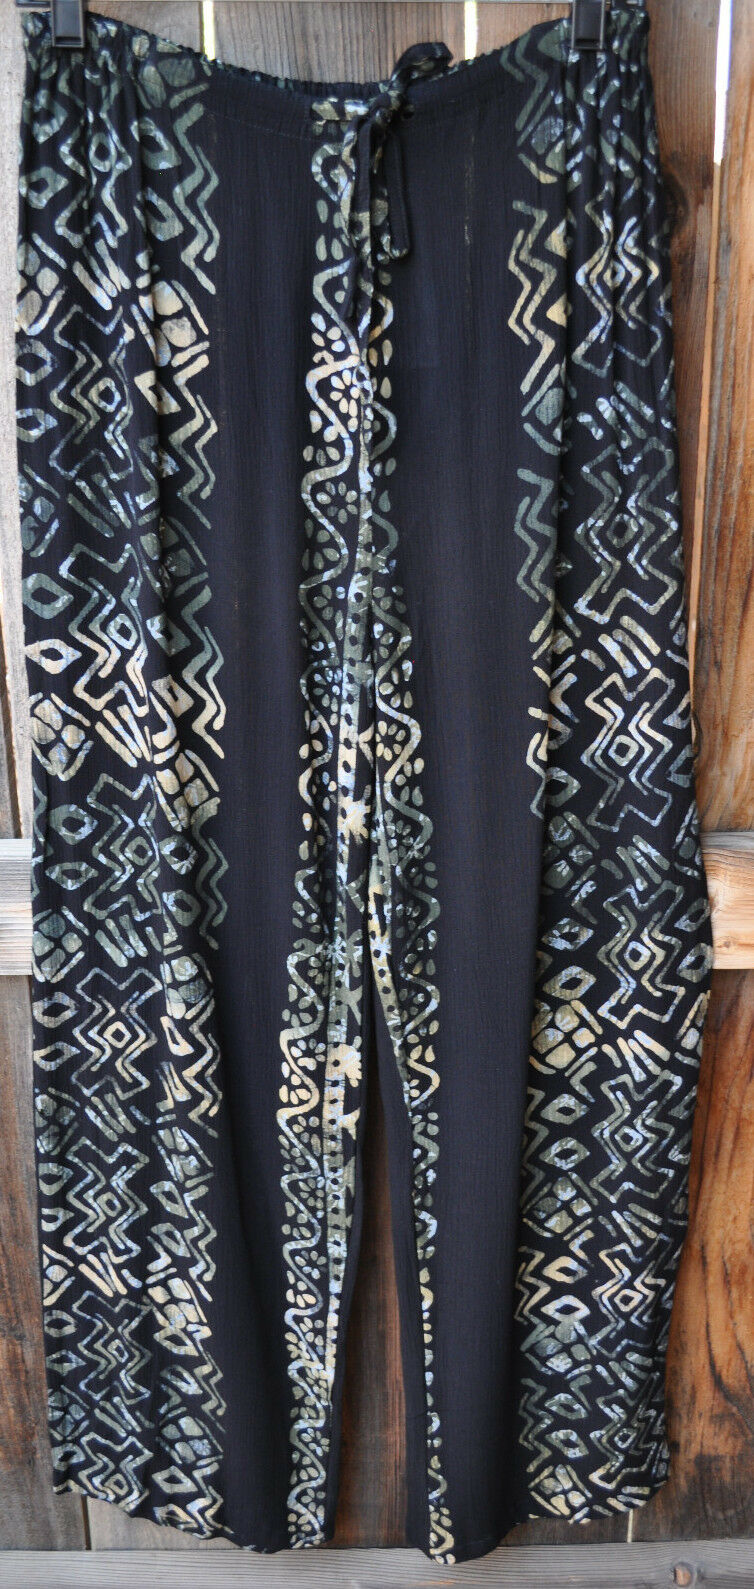 ART TO WEAR 4 PANT IN GORGEOUS NEW HATARI BY MISSION CANYON,OS+,